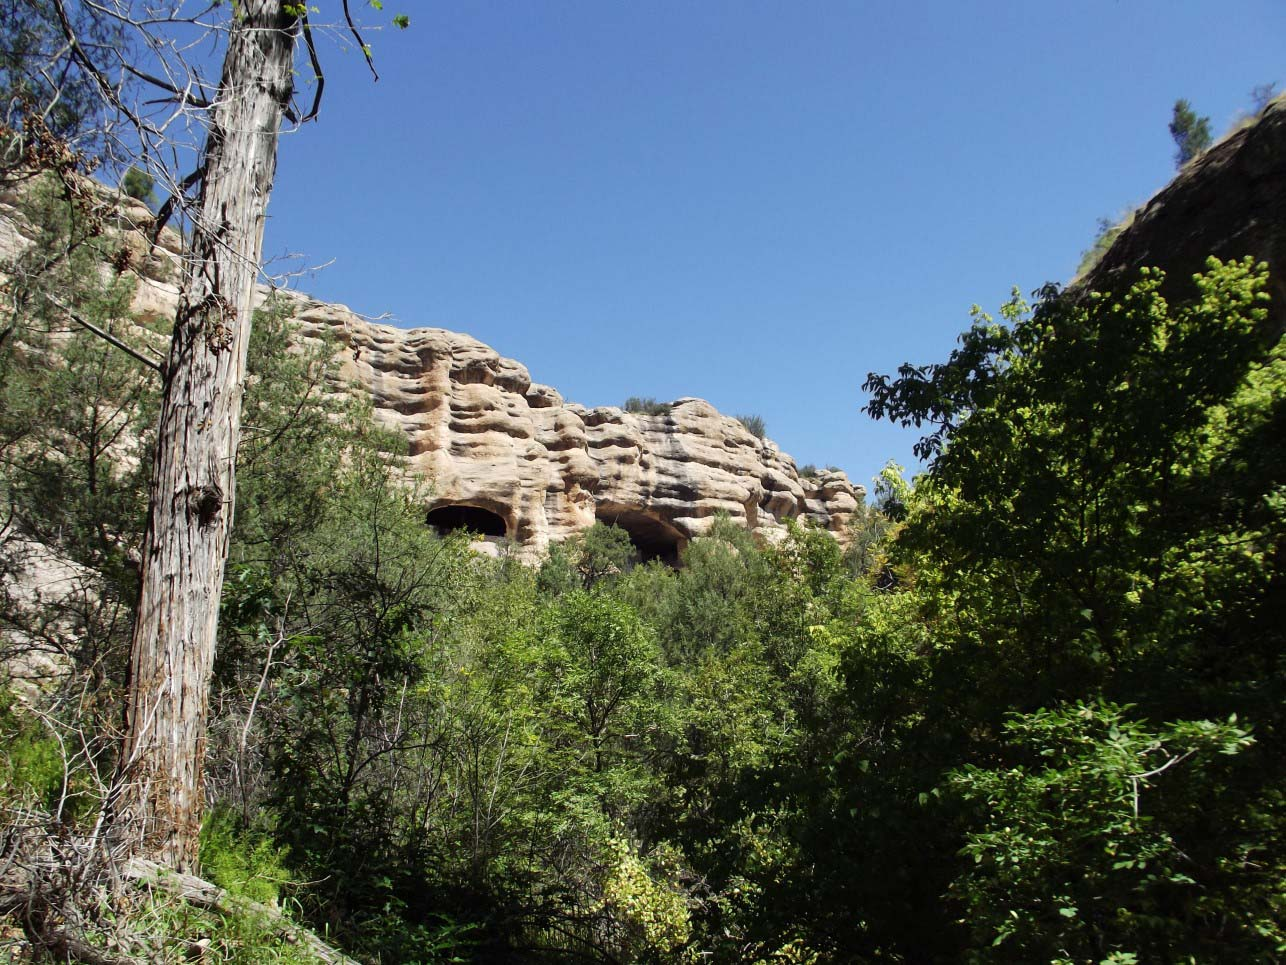 View of caves above some trees